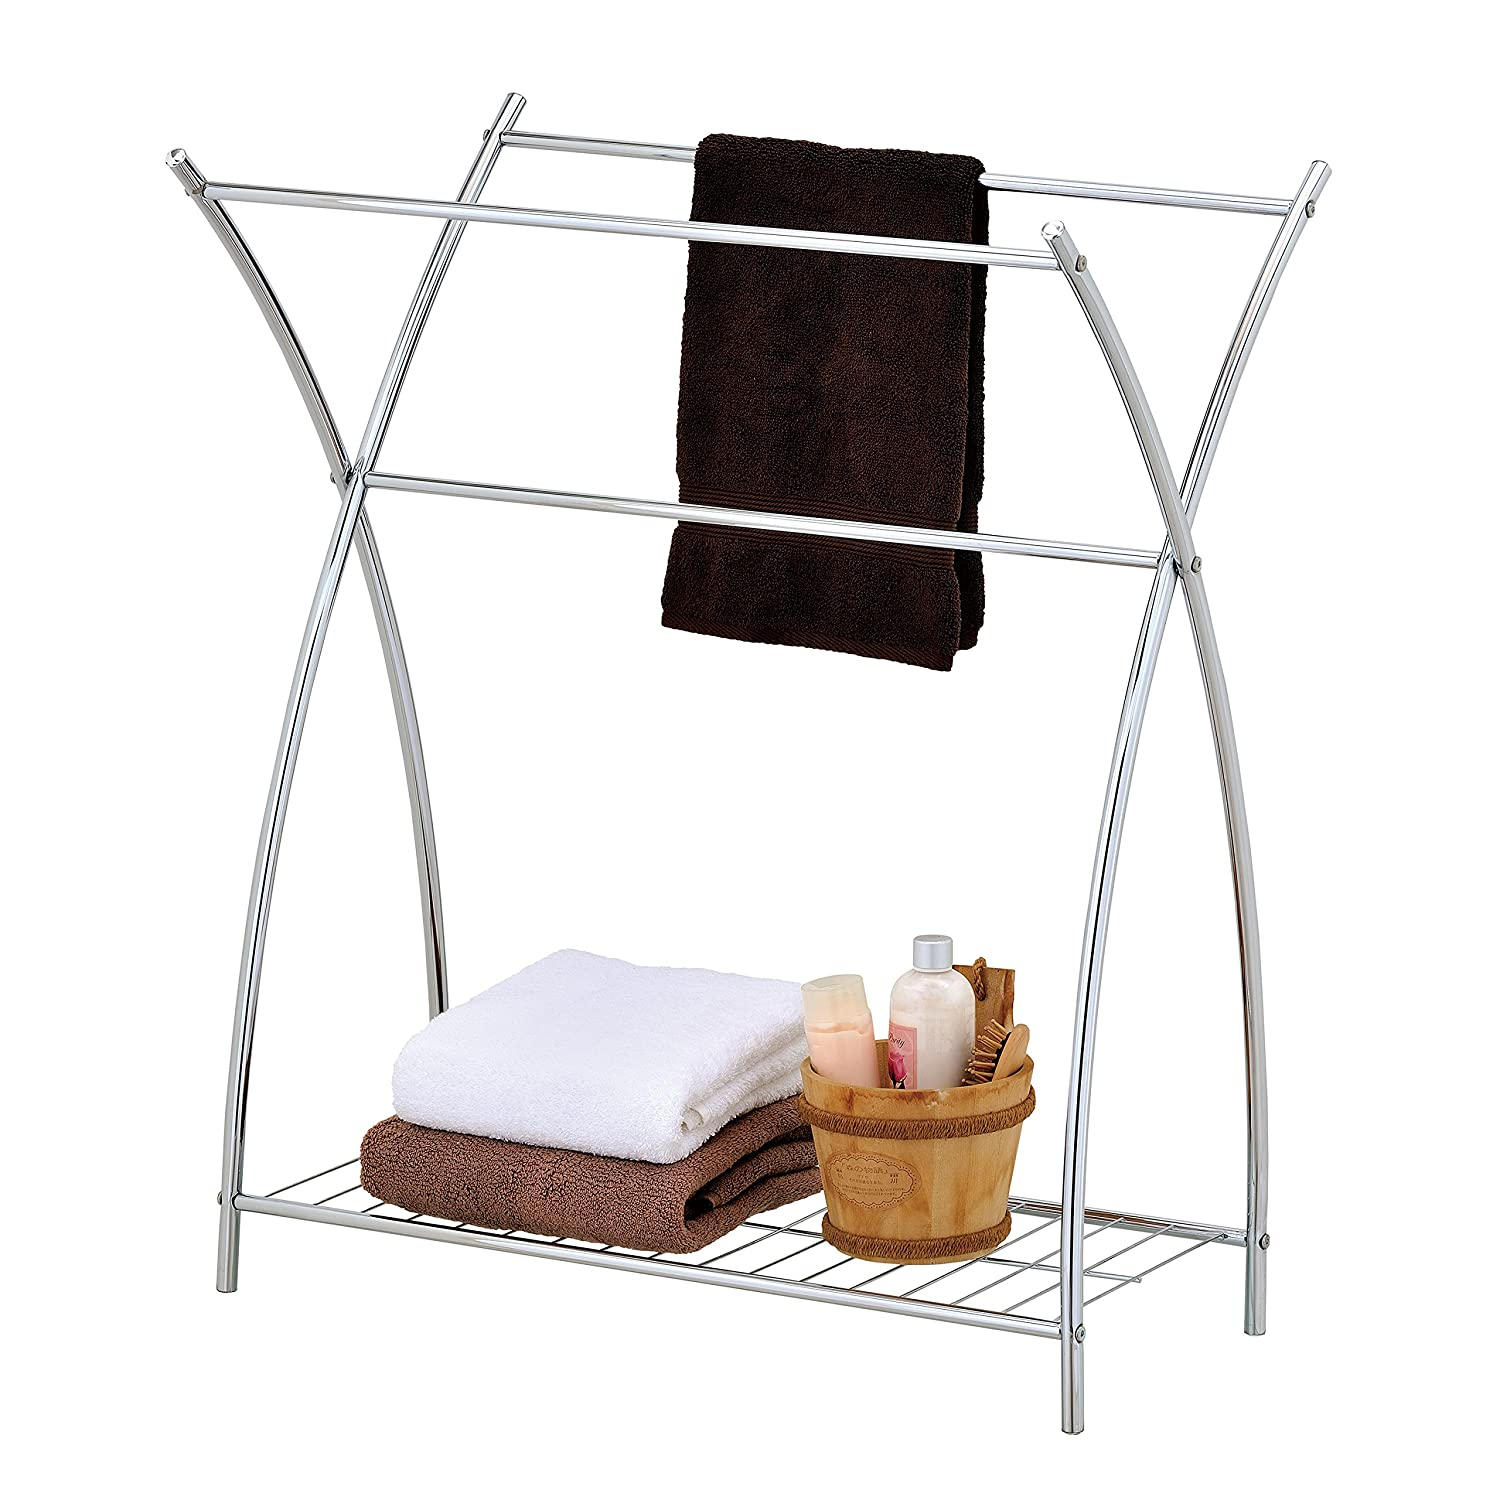 MyGift Freestanding 3 Bar Bathroom Chrome Towel Rack & Holder with Wire Shelf TB-BATH0142SIL